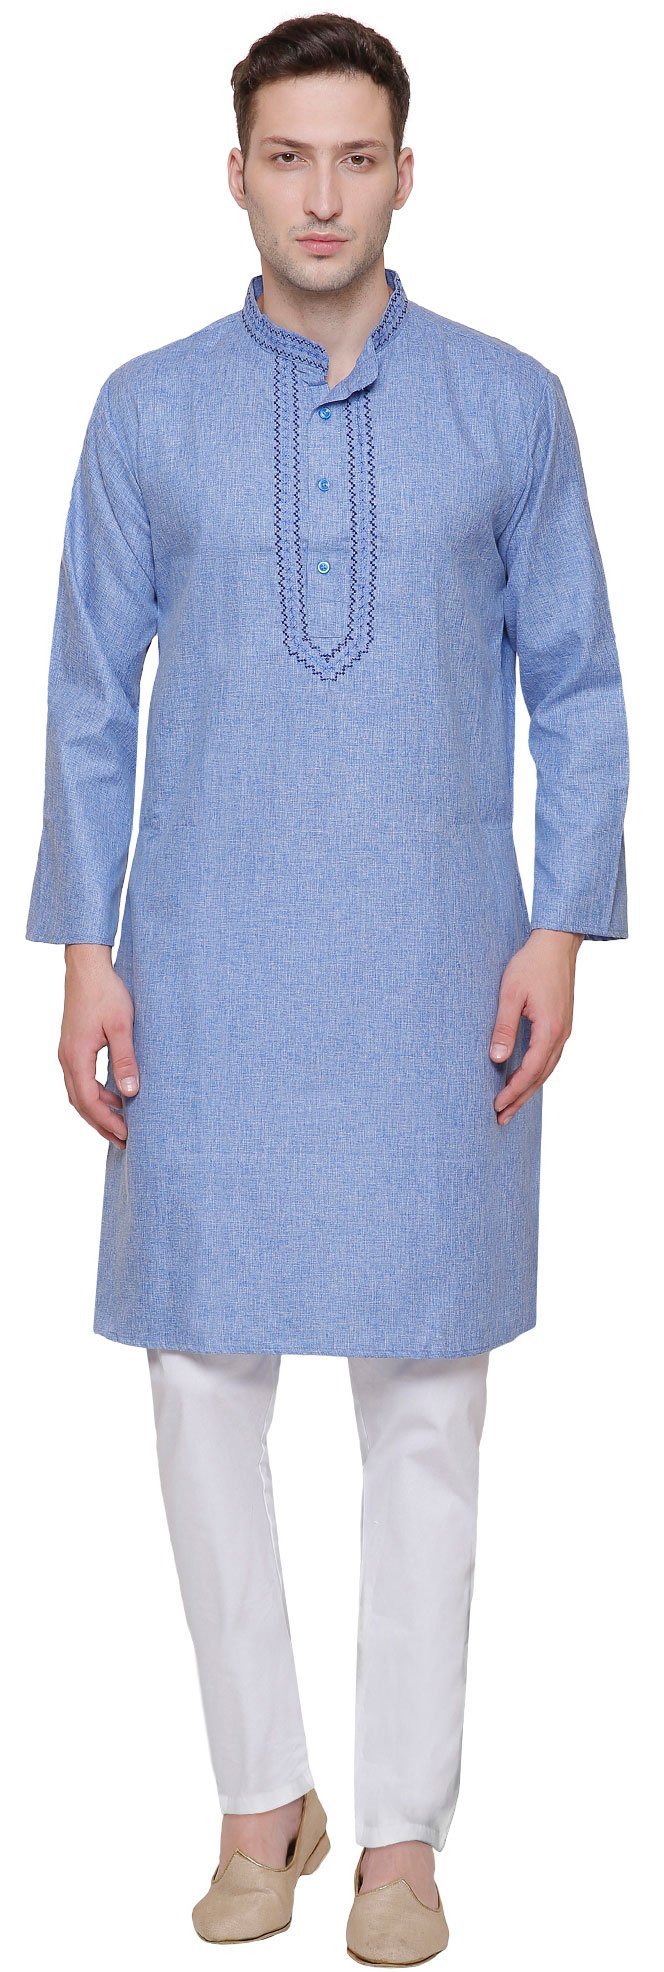 Embroidered Cotton Mens Kurta Pyjama Indian Clothes (Blue, L)